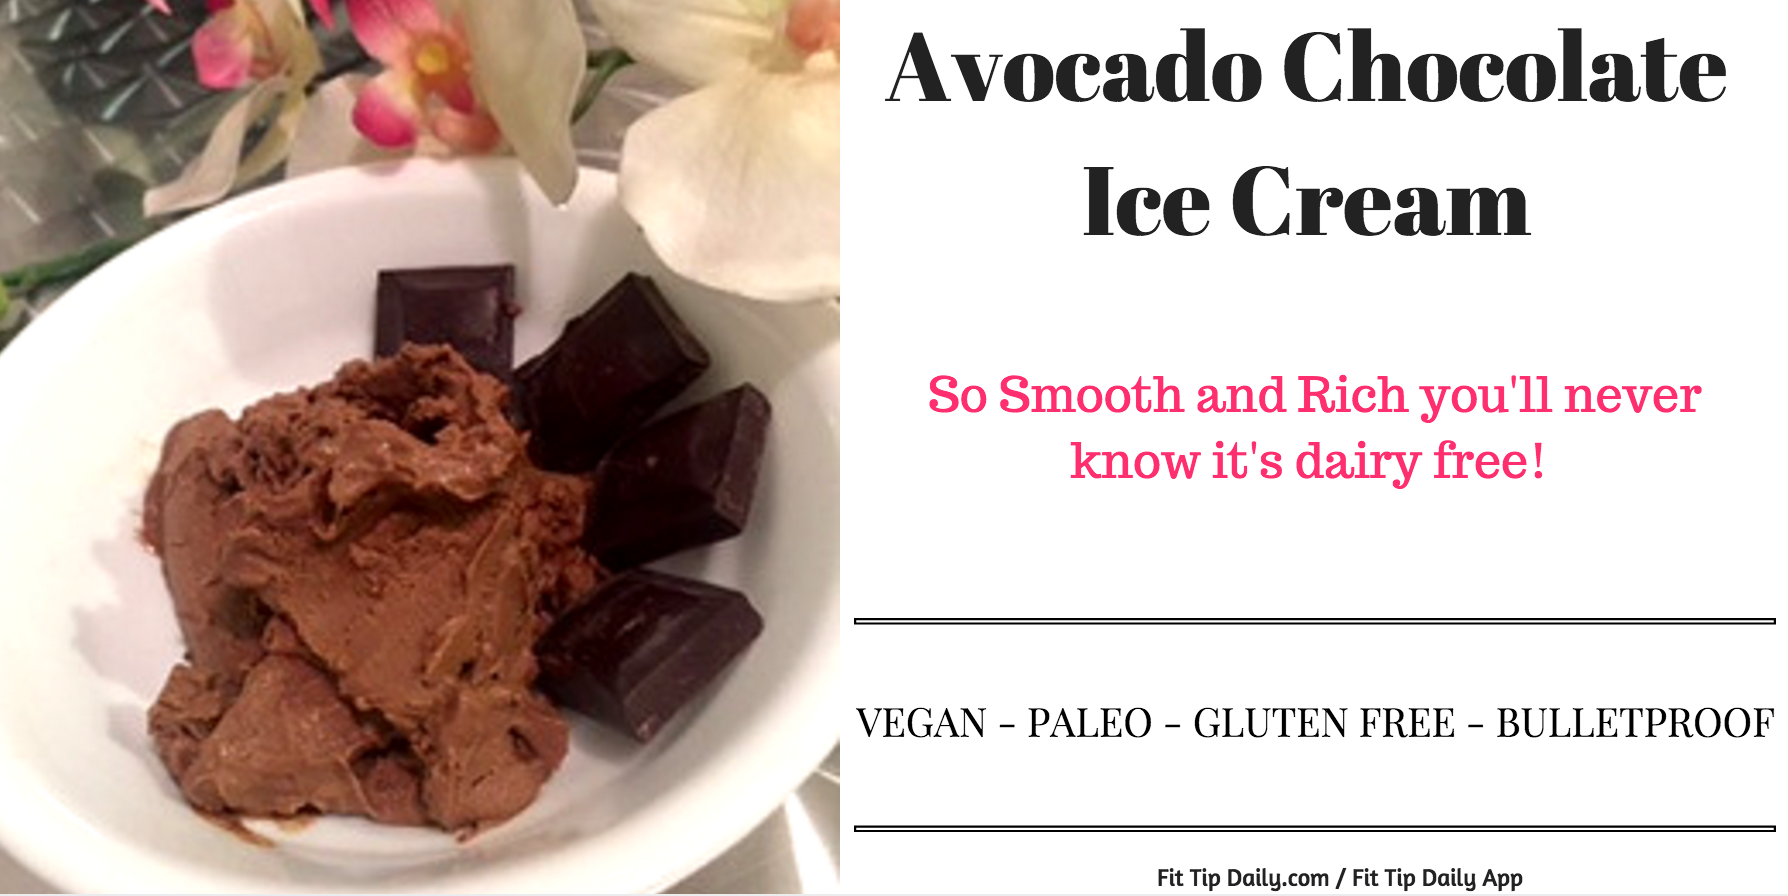 Vegan And Dairy Free Chocolate Coconut Ice Cream With Avocado Recipe ...